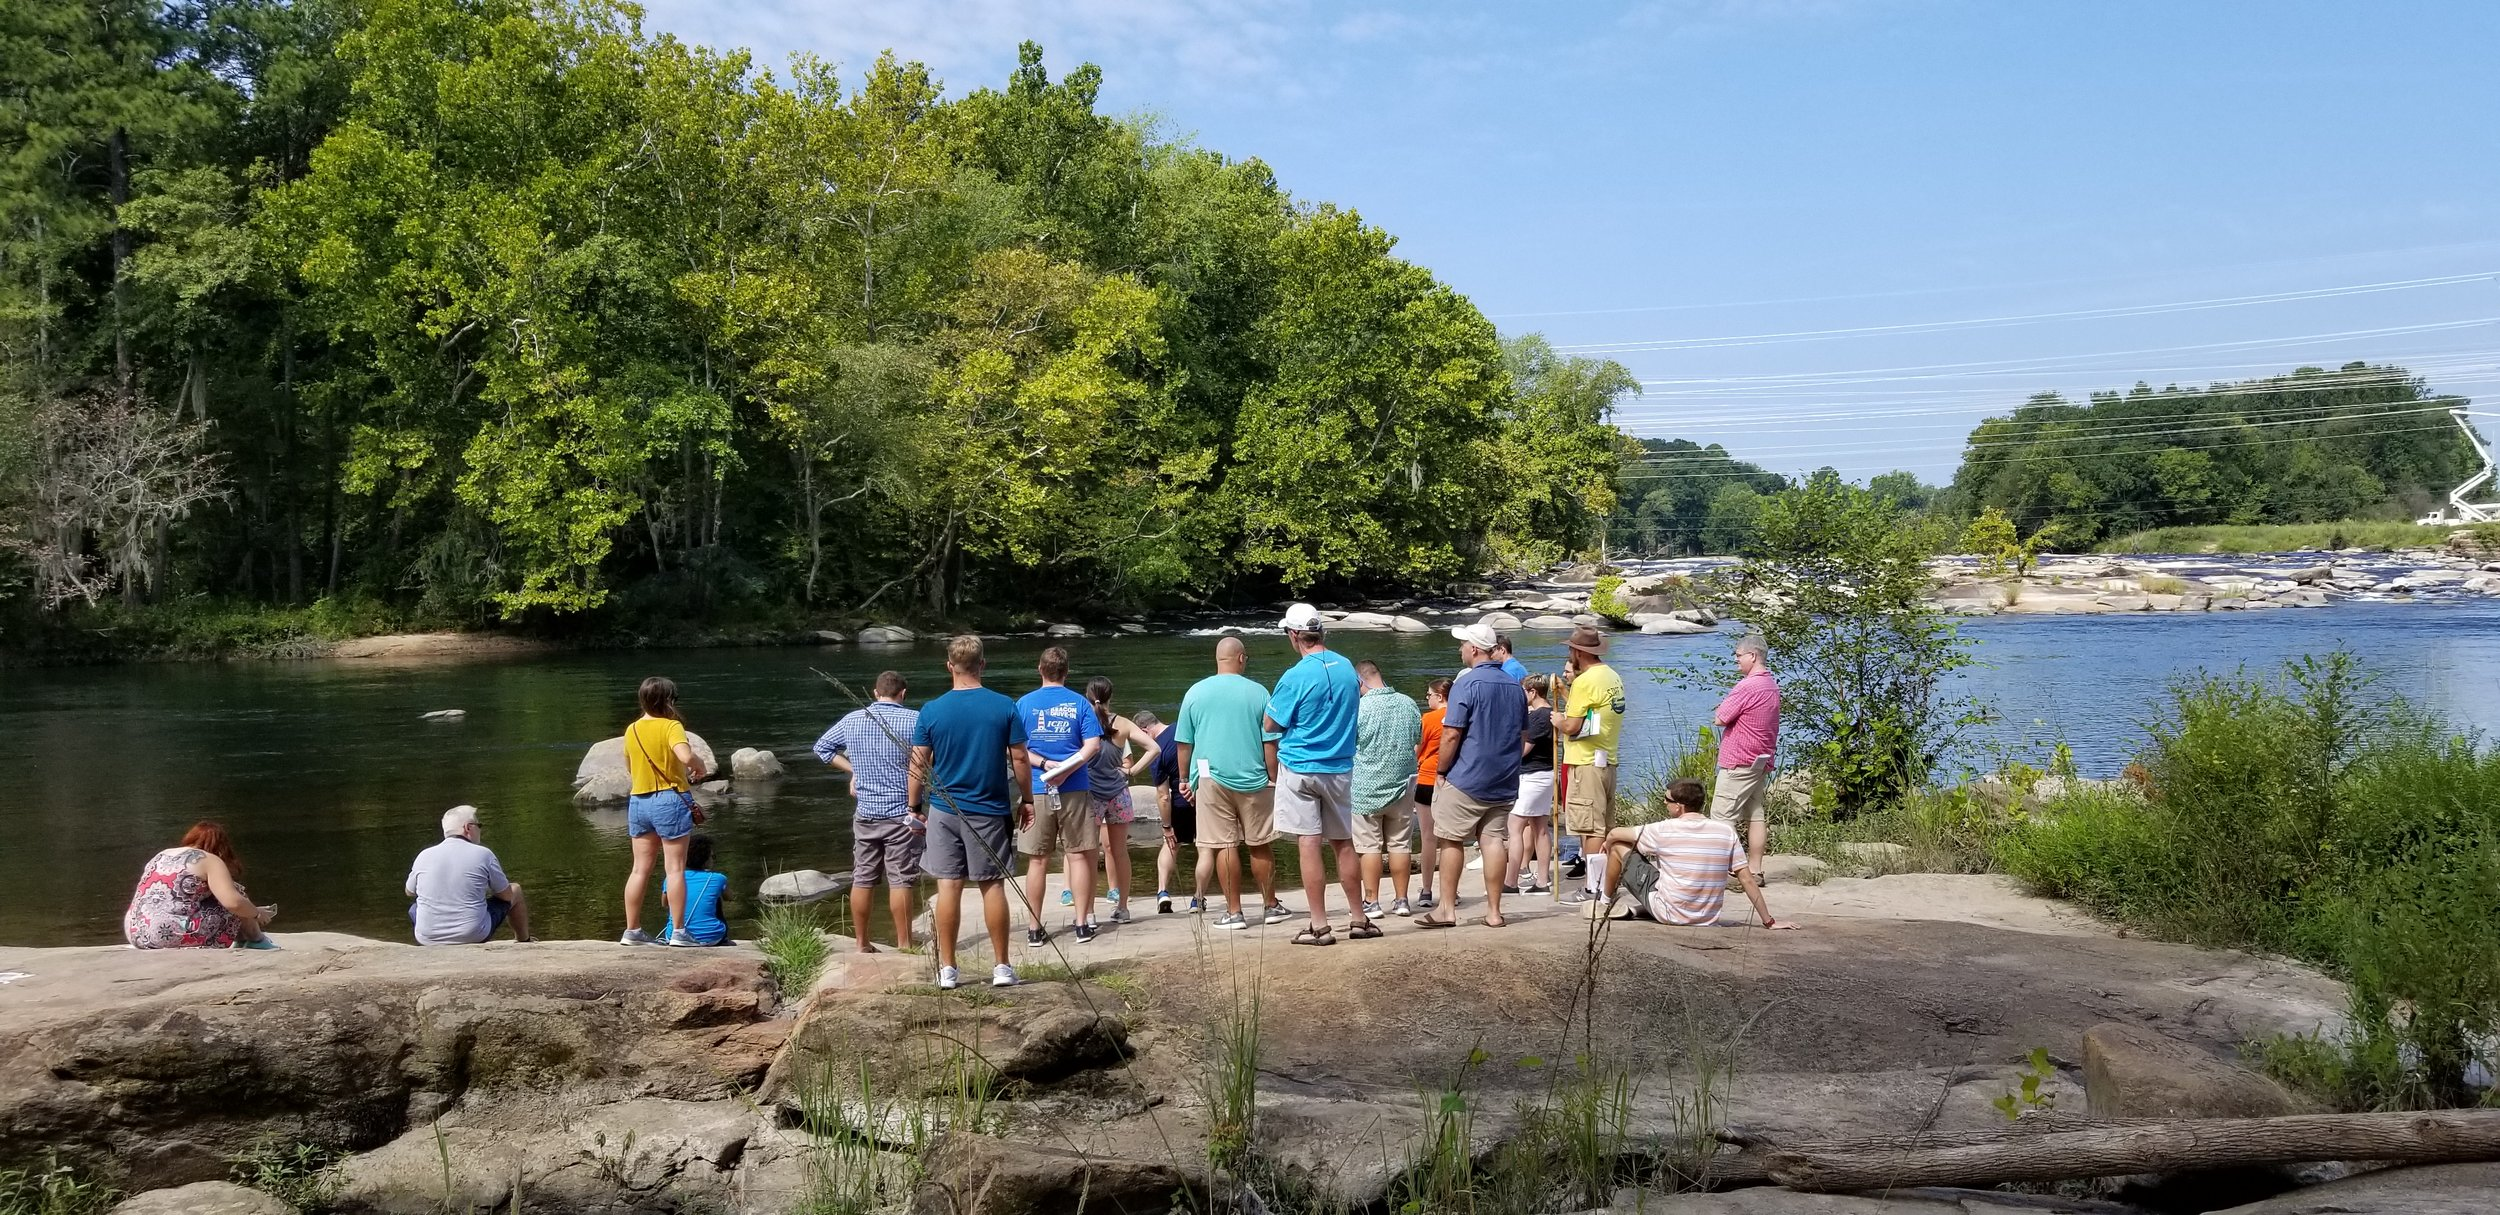 Hike  along the Three Rivers Greenway on paved ADA accessible trails or explore the rock islands along the way. Hiking is also offered at Harbison State Park and Congaree national Park. FREE - $5.